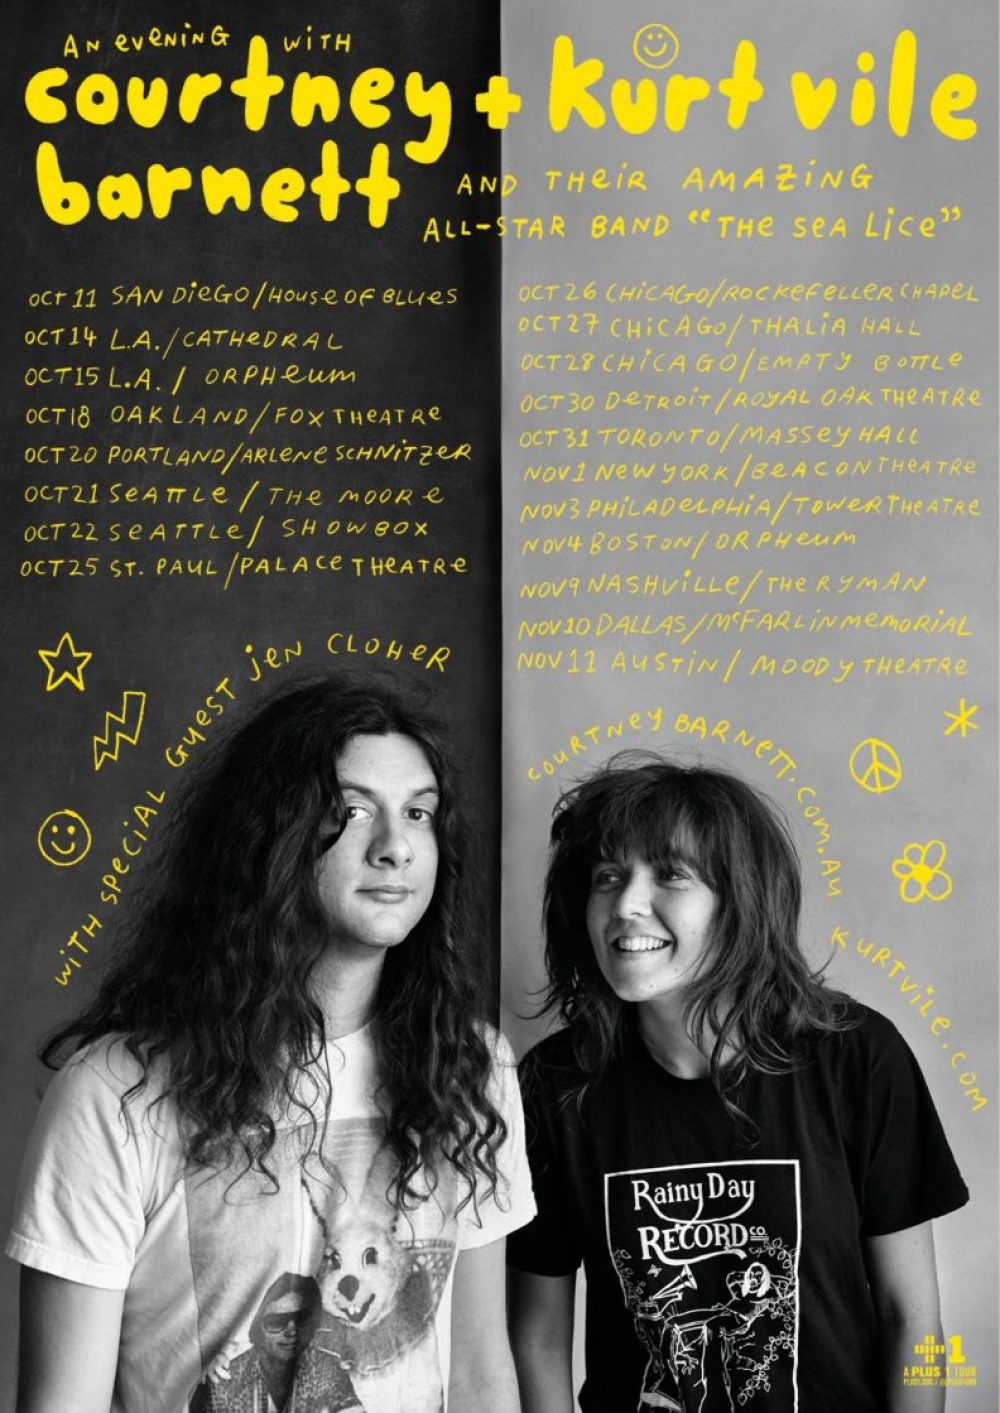 courtney barnett and kurt vile tour 2017 poster